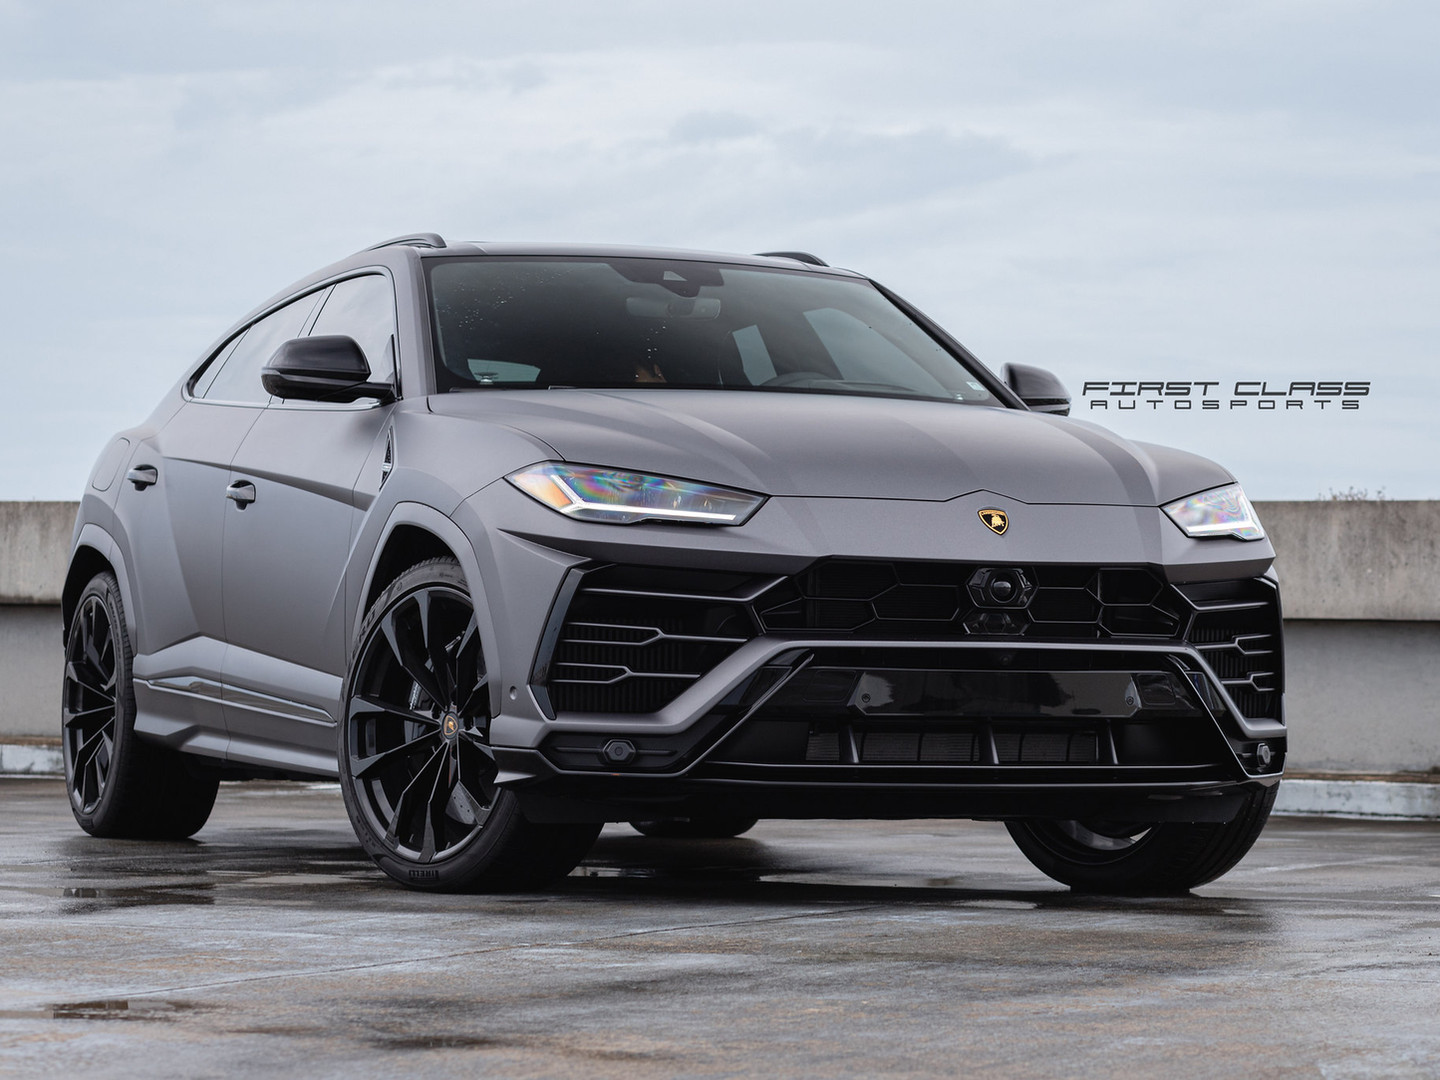 Lamborghini urus - Satin Car Wrap Miami